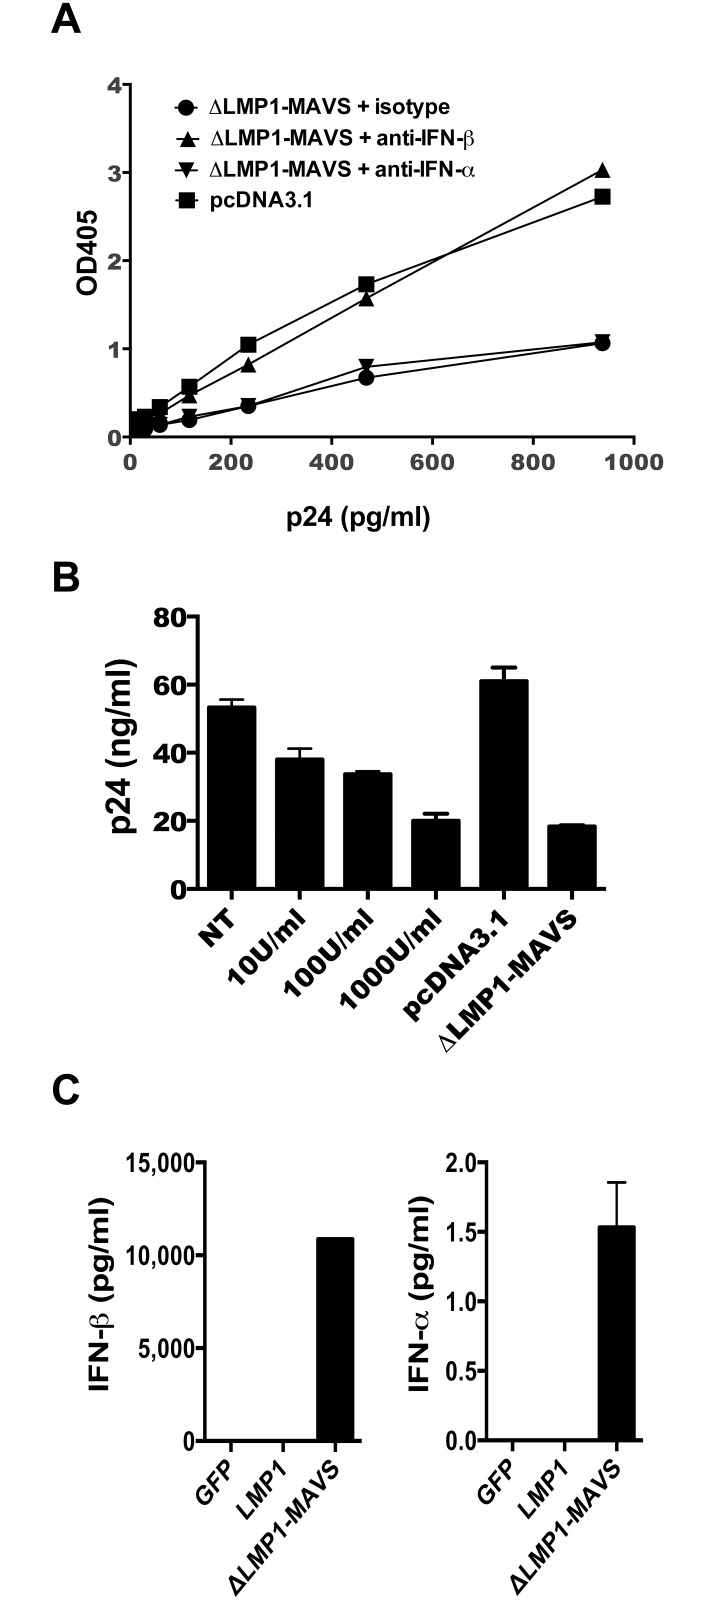 Beta-interferon mediates inhibition of HIV-1 BaL replication. (A) The relative level of HIV-1 BaL strain viral replication in TZM-bl cells was measured following incubation with supernatant from 293T cells transfected with either pcDNA3.1 or pΔLMP1-MAVS plasmid, combined with 60 μg of isotype control antibody, anti-IFN-β antibody, or anti-IFN-α antibody. (B) Human CD4+ T cells were infected with HIV-1 BaL in the presence of increasing concentrations of interferon-α and compared to infection in the presence of 293T supernatant following transfection with either pcDNA3.1 or pΔLMP1-MAVS plasmid. (C) Supernatant from 293T cells transfected with pcDNA3.1 GFP, LMP1, or ΔLMP1-MAVS plasmid was assayed for IFN-α and IFN-β secretion by ELISA. NT: no treatment.